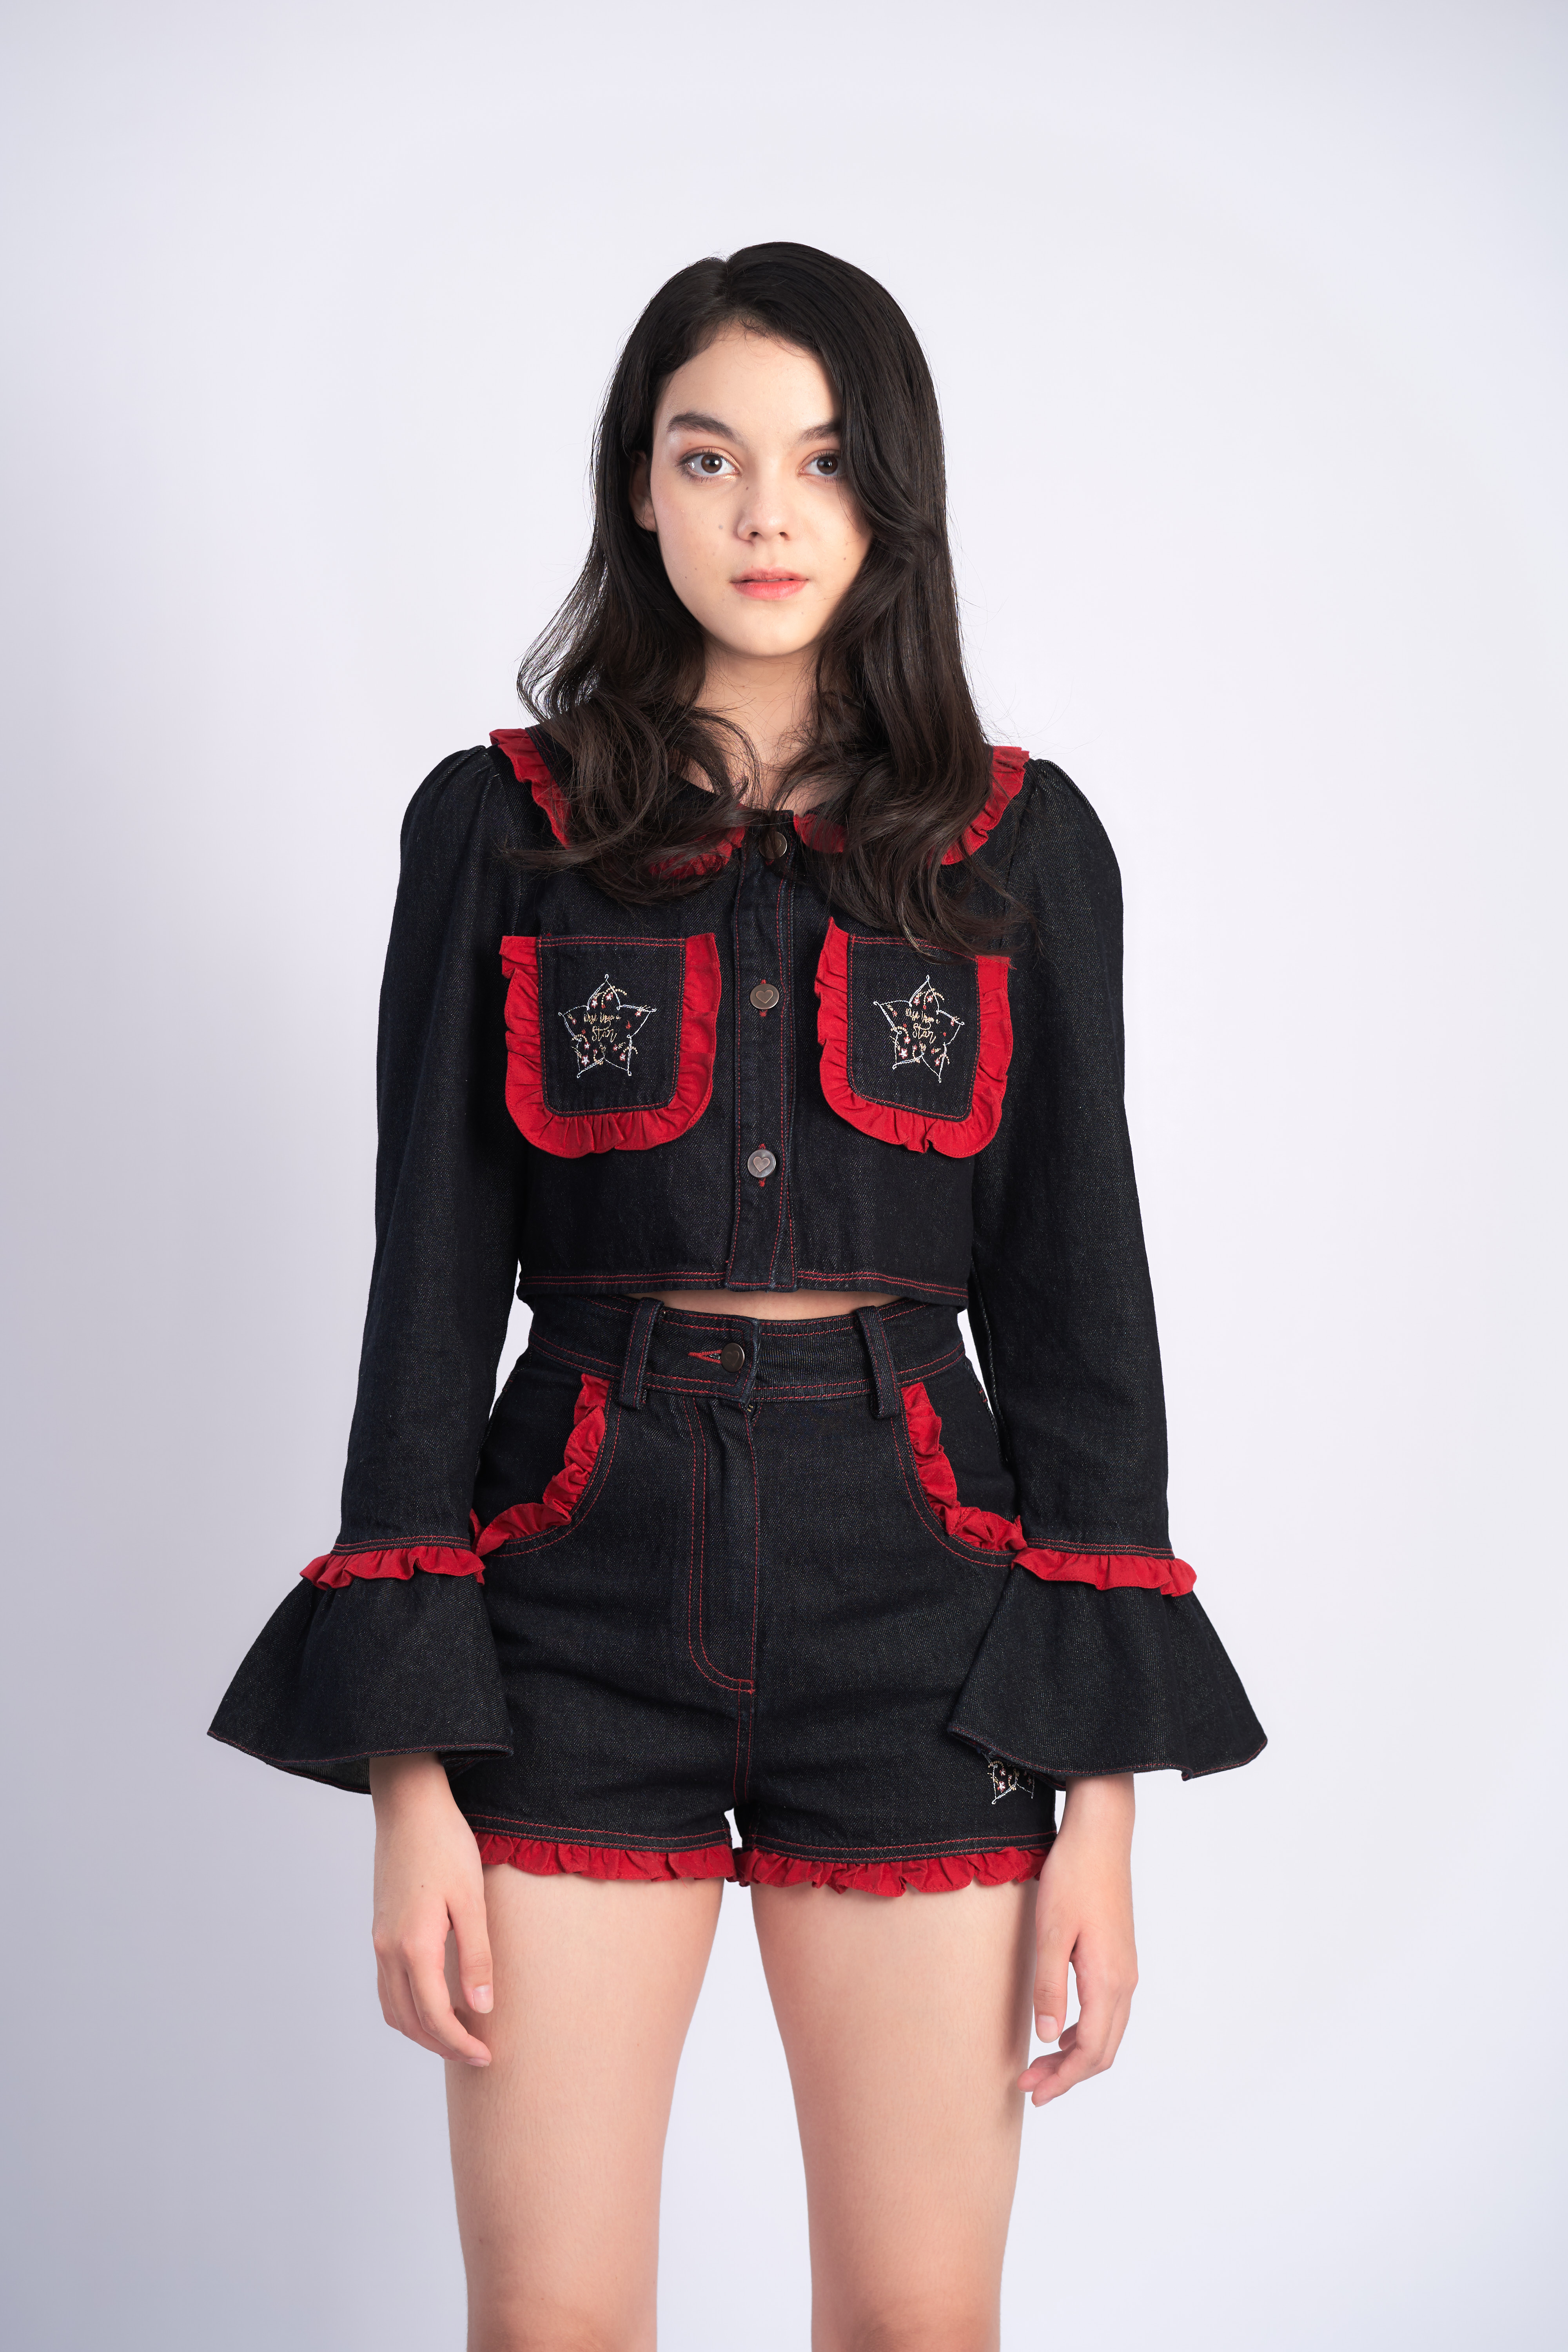 STR03 - WISH UPON A STAR DENIM EMBROIDERED JACKET - IN STOCK NOW